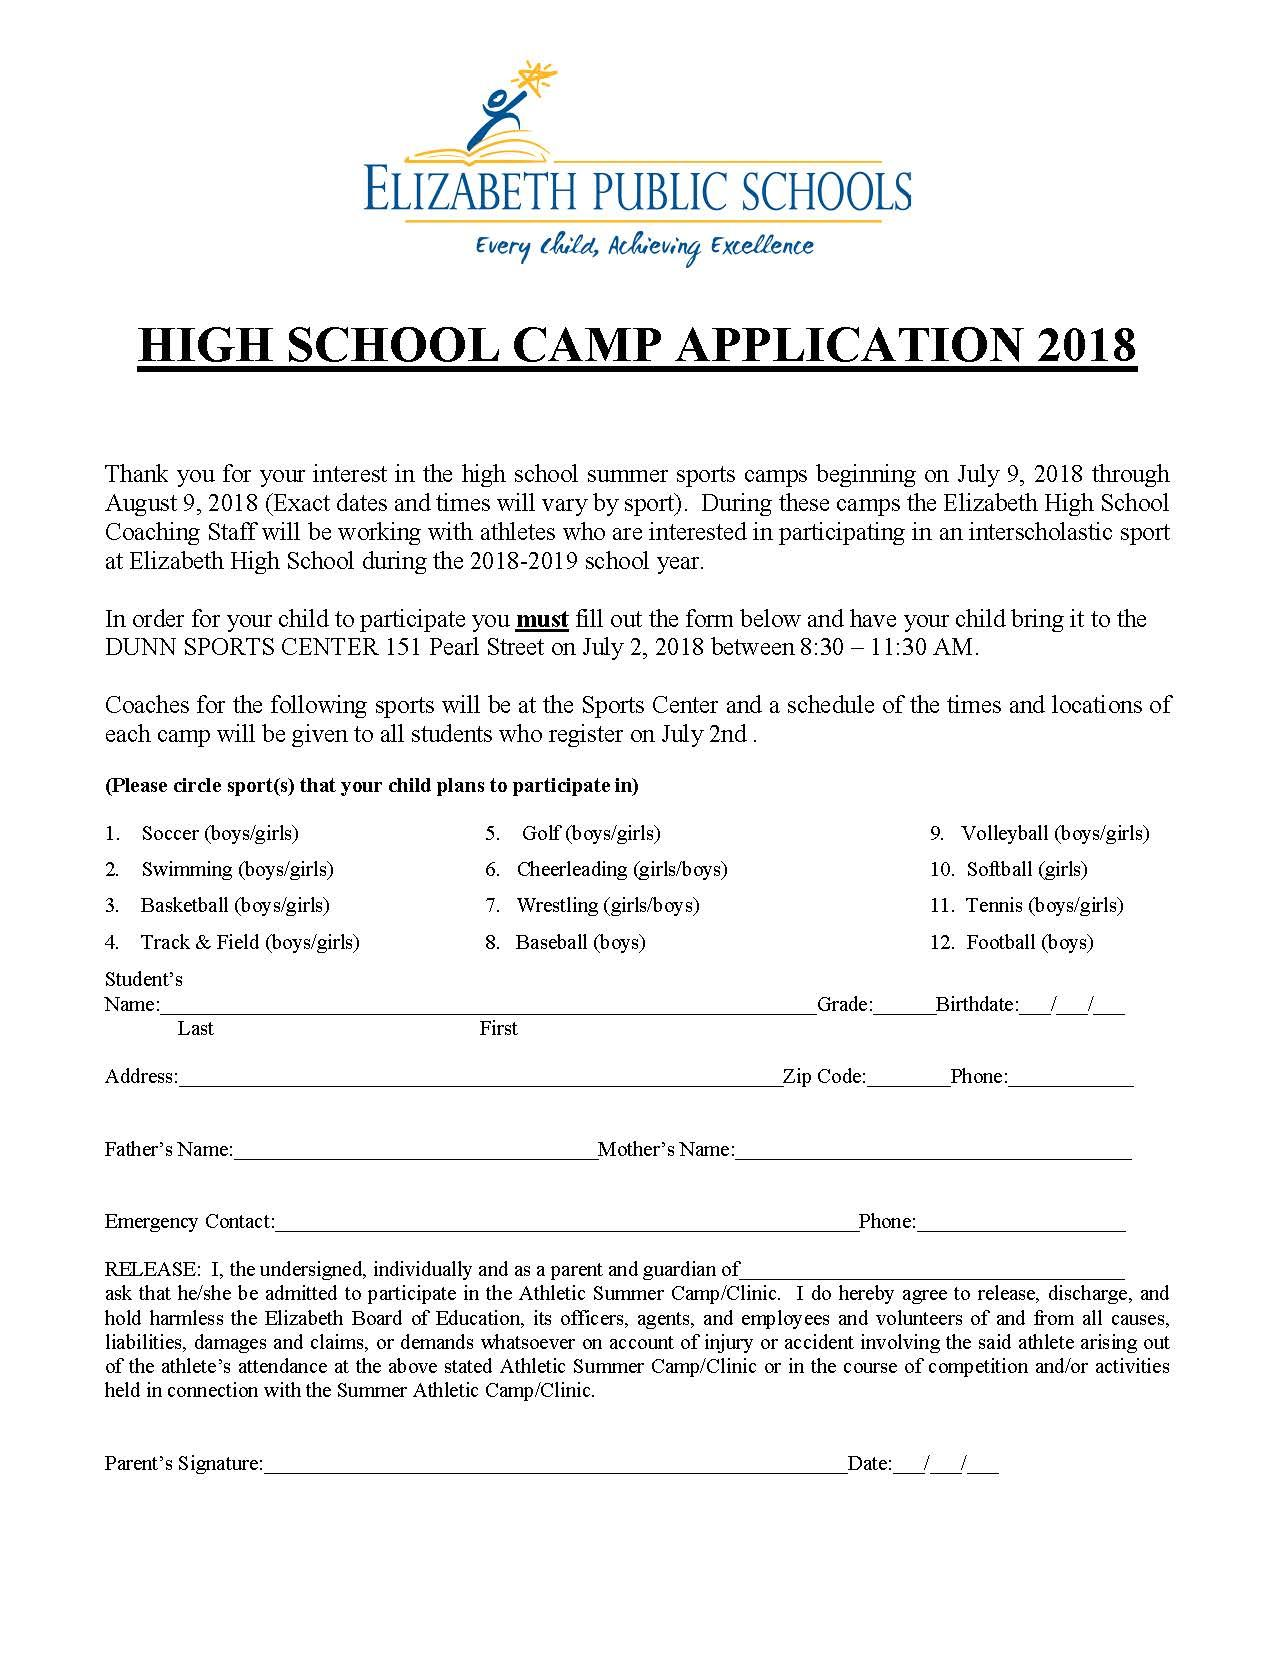 2018 High School Summer Camp Application